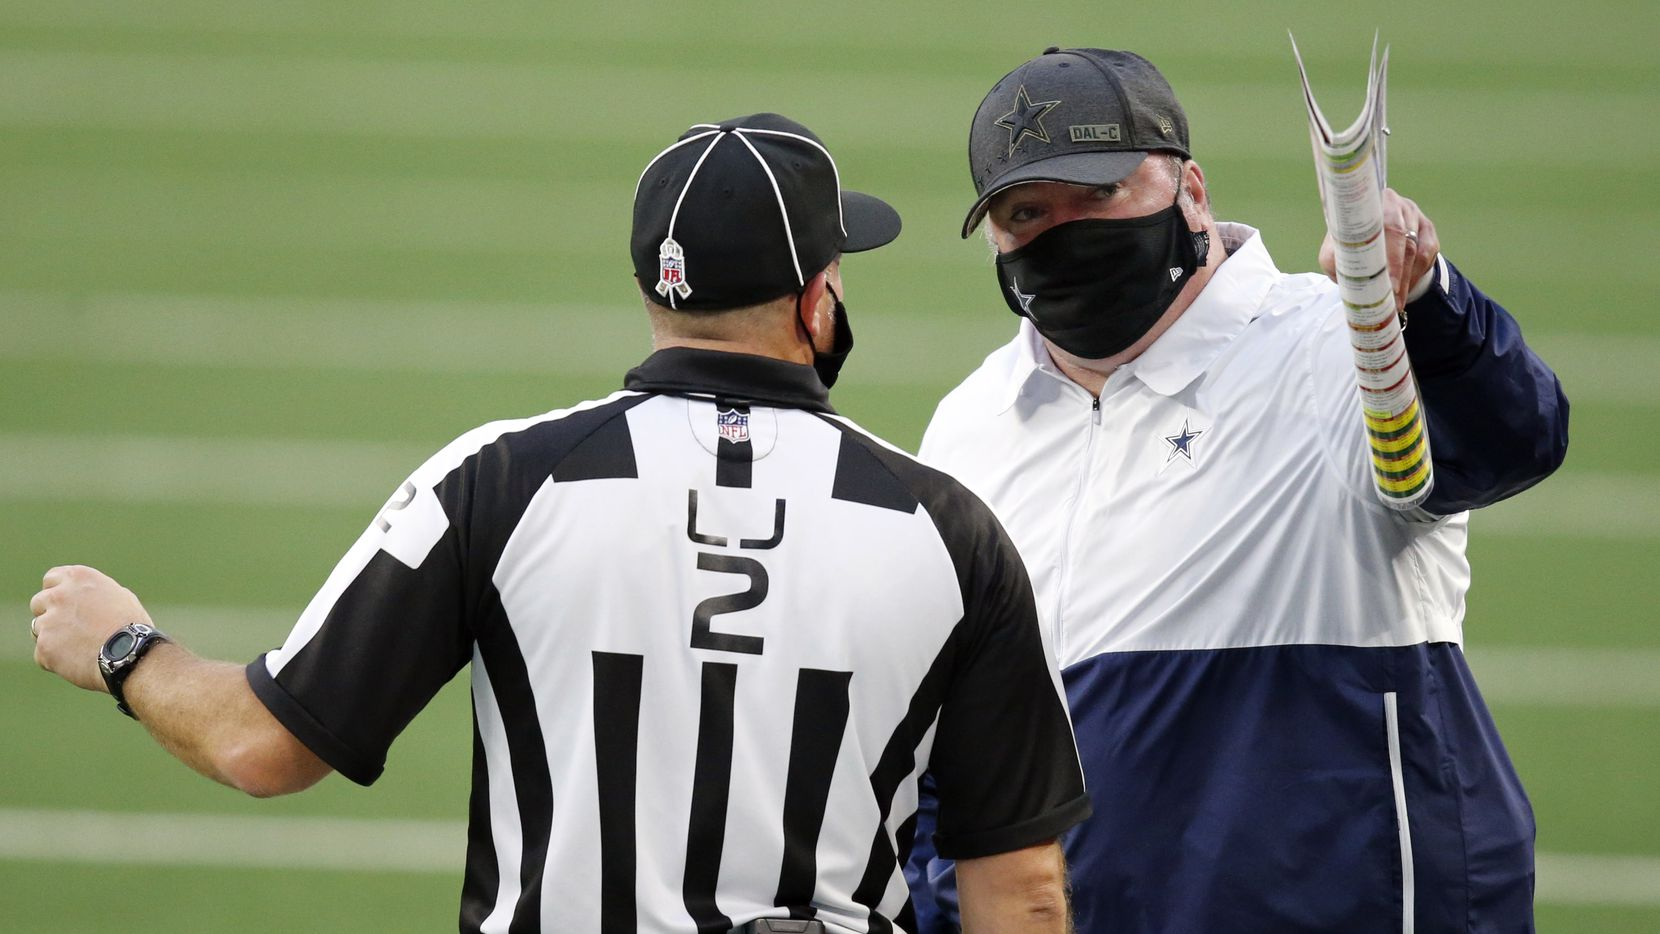 Cowboys head coach Mike McCarthy argues with line judge Bart Longson (2) during the second quarter against the Steelers at AT&T Stadium in Arlington on Sunday, Nov. 8, 2020.